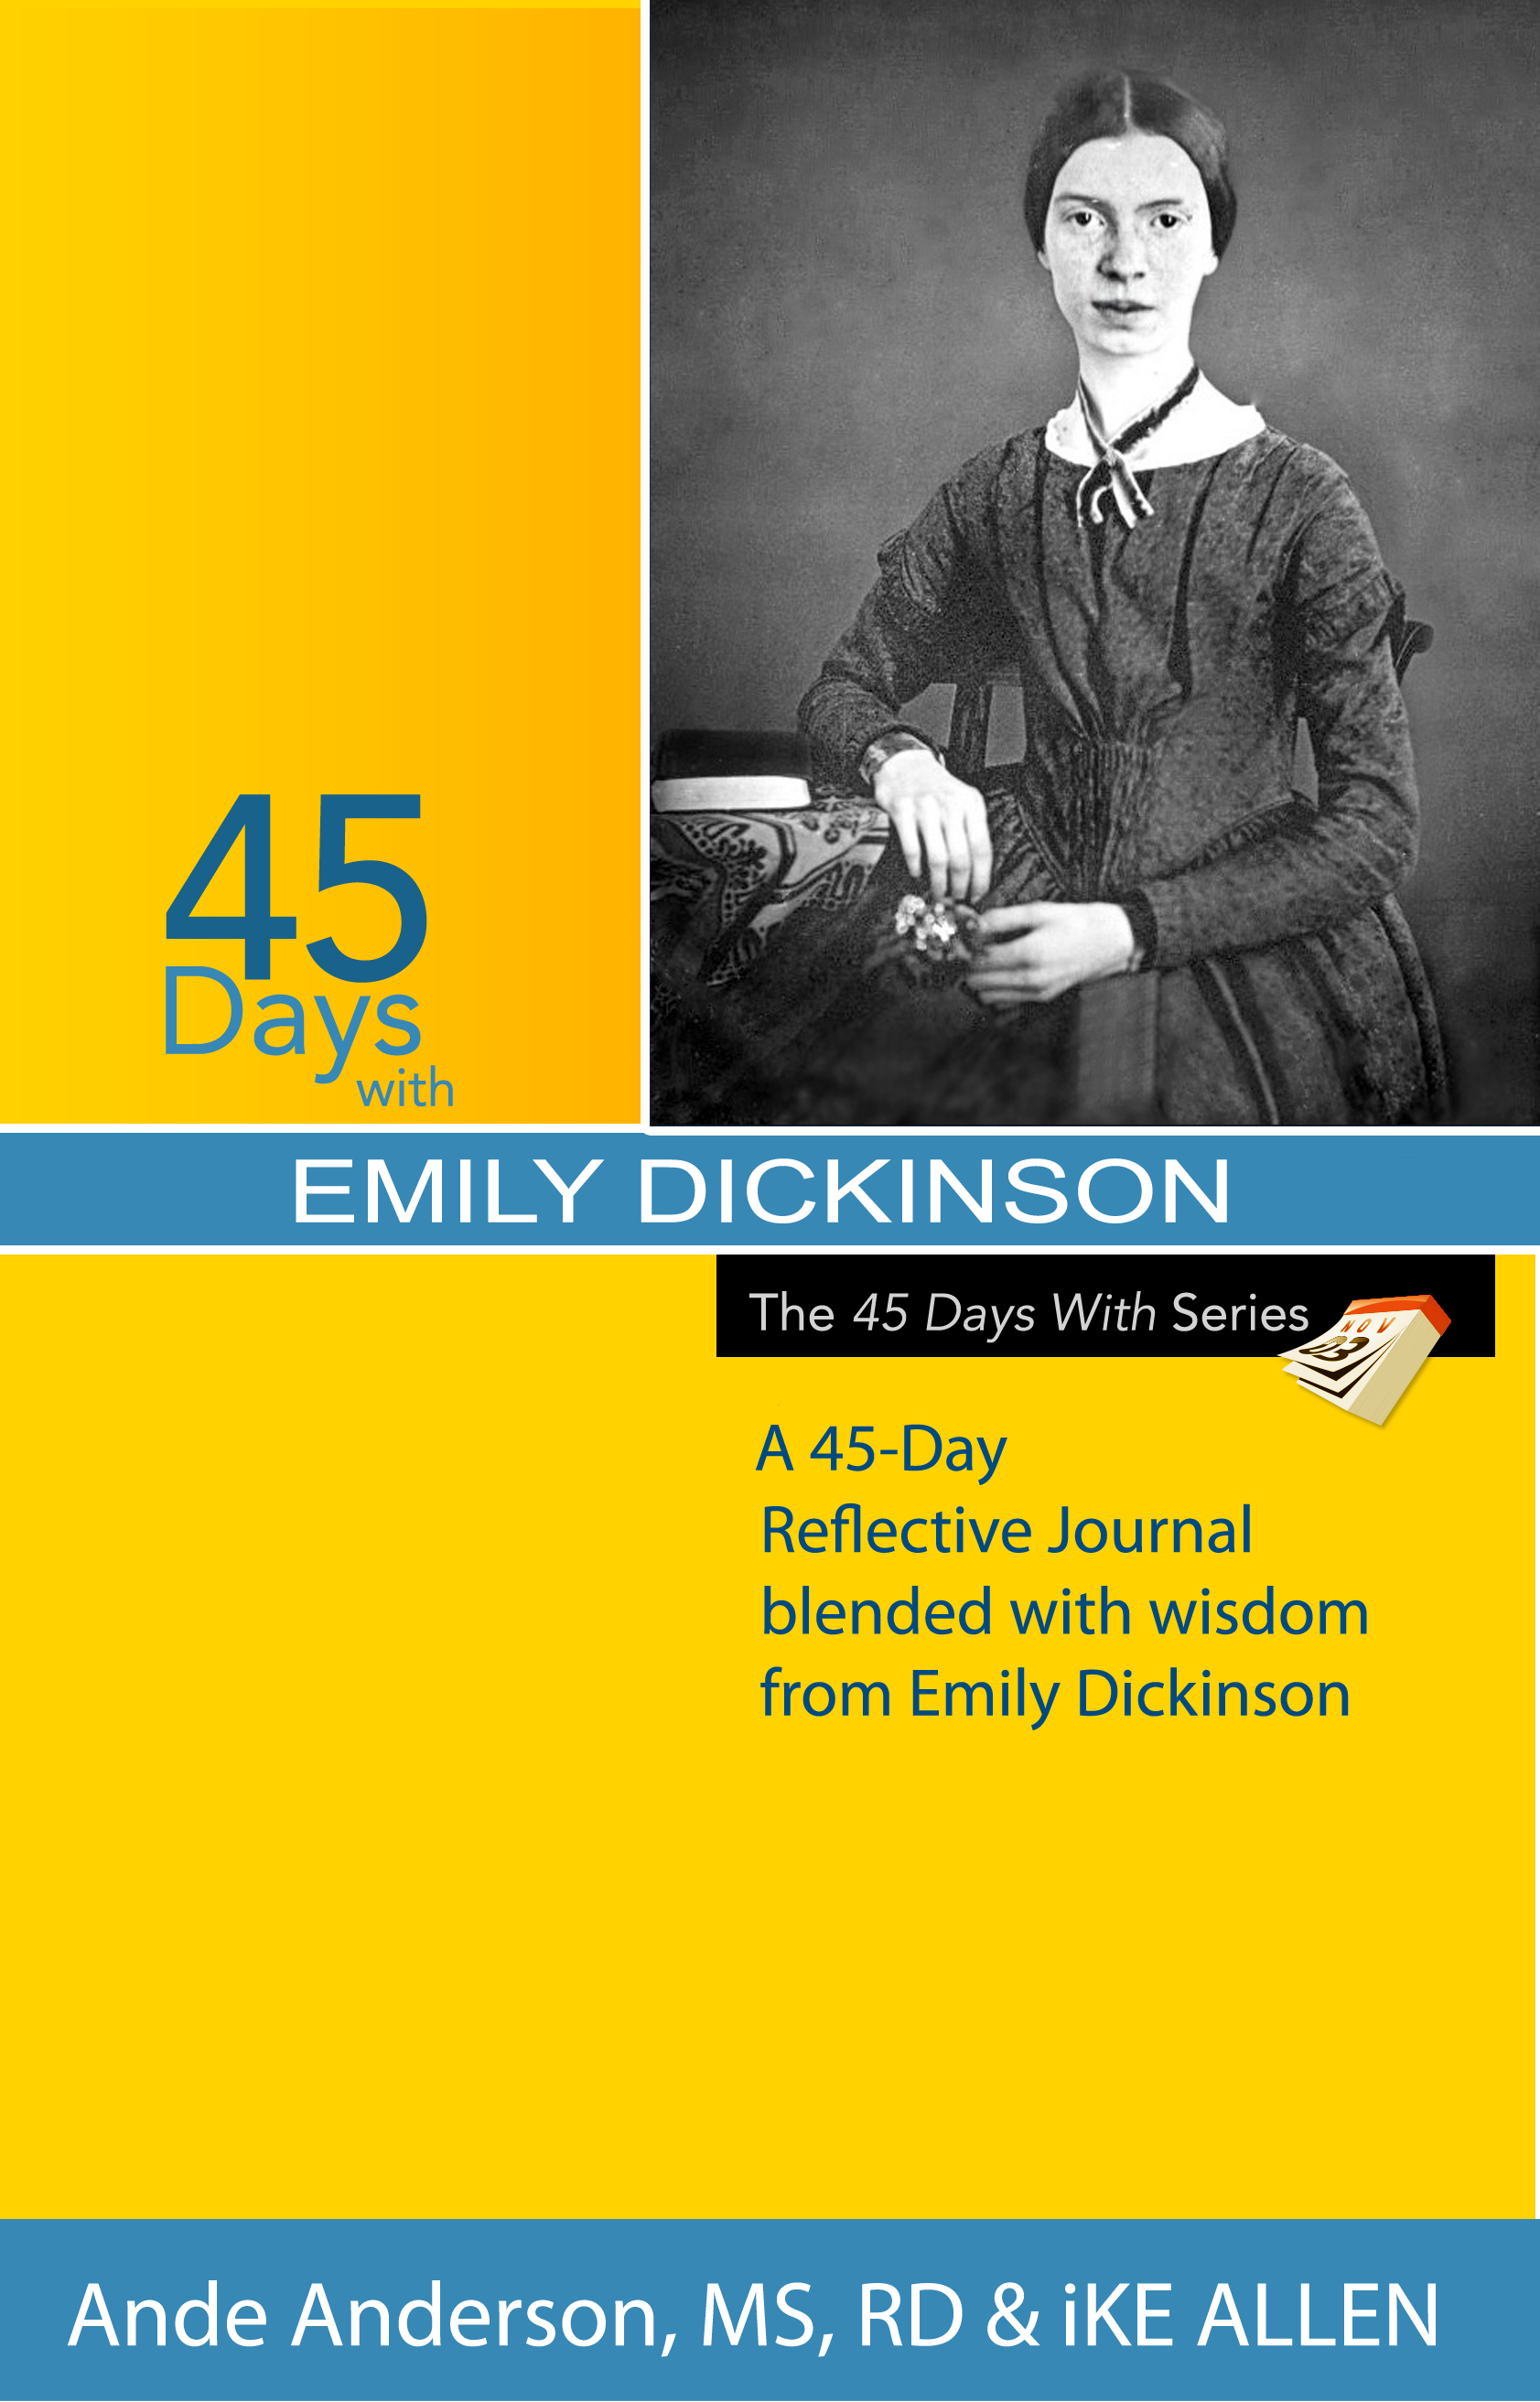 45 Days with Emily Dickinson